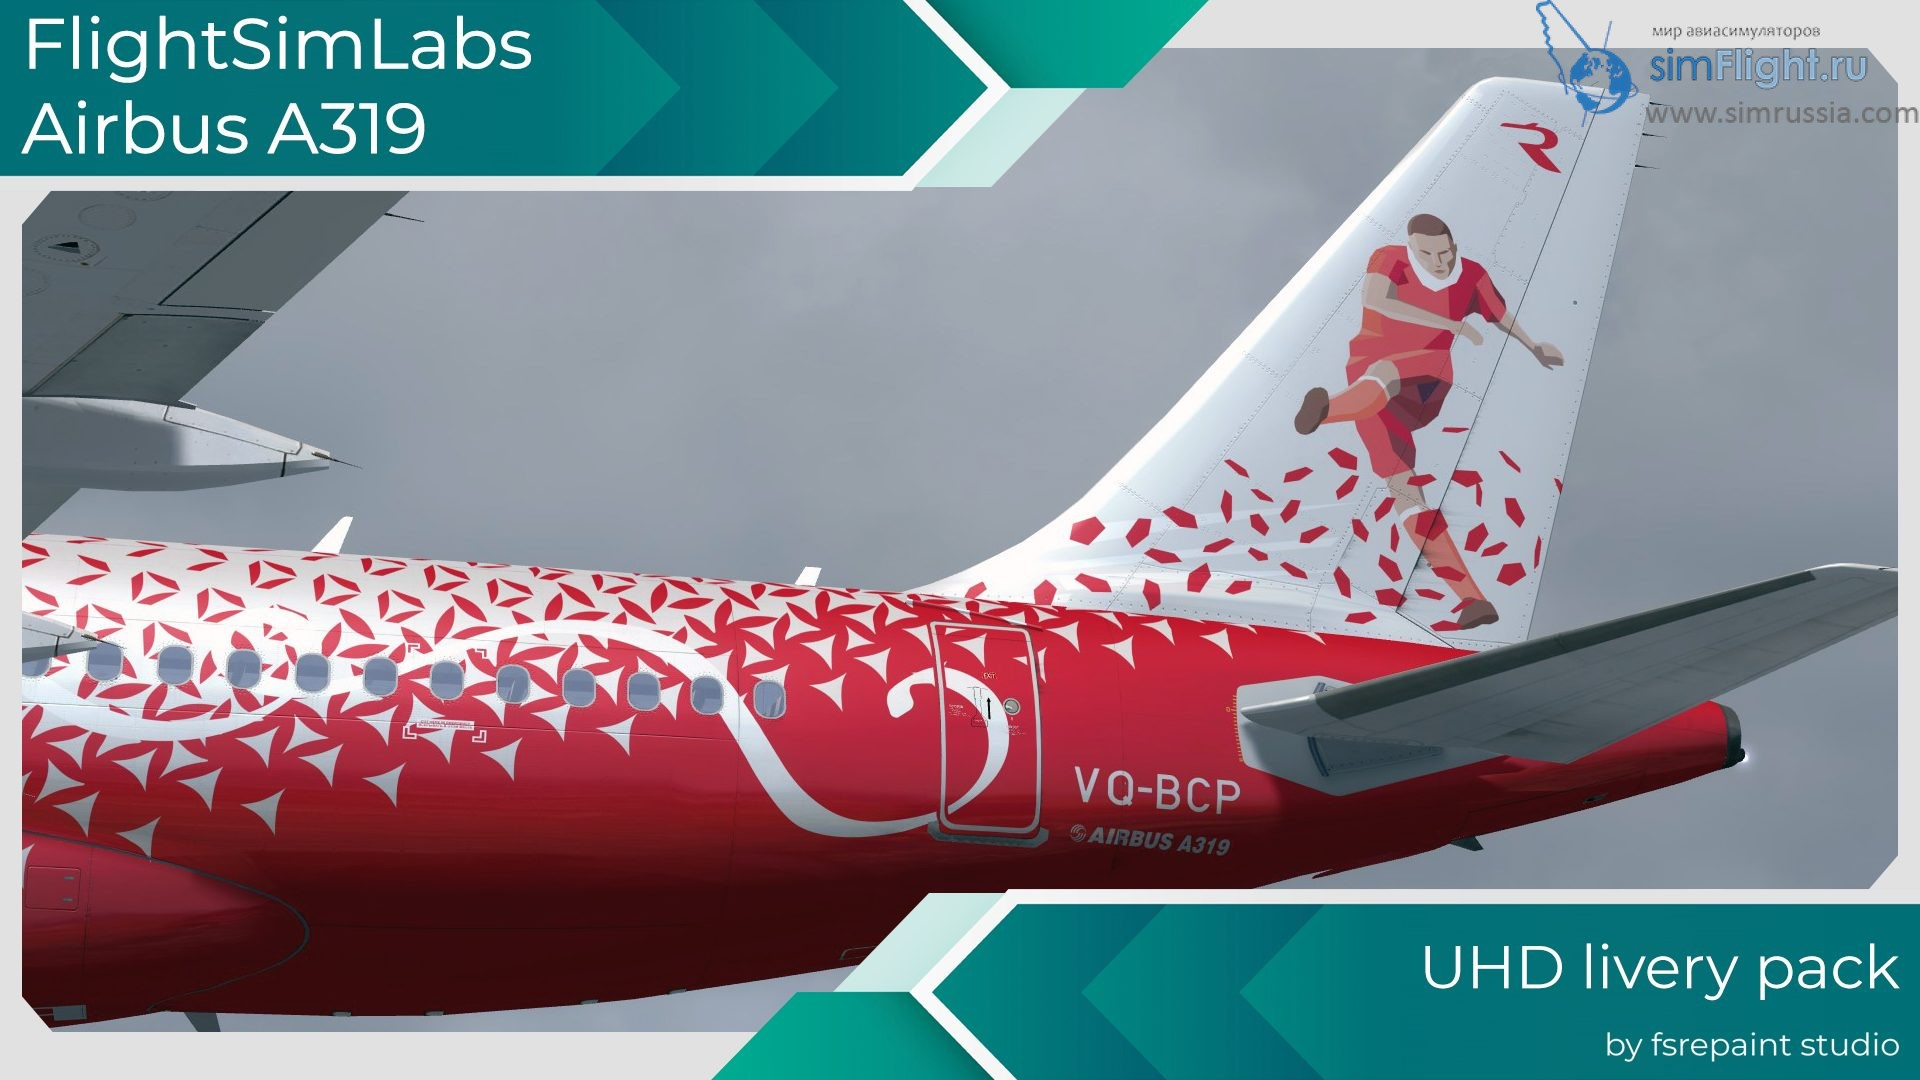 FSREPAINT - FLIGHT SIM LABS AIRBUS A319 LIVERY PACK 1 • simFlight Россия